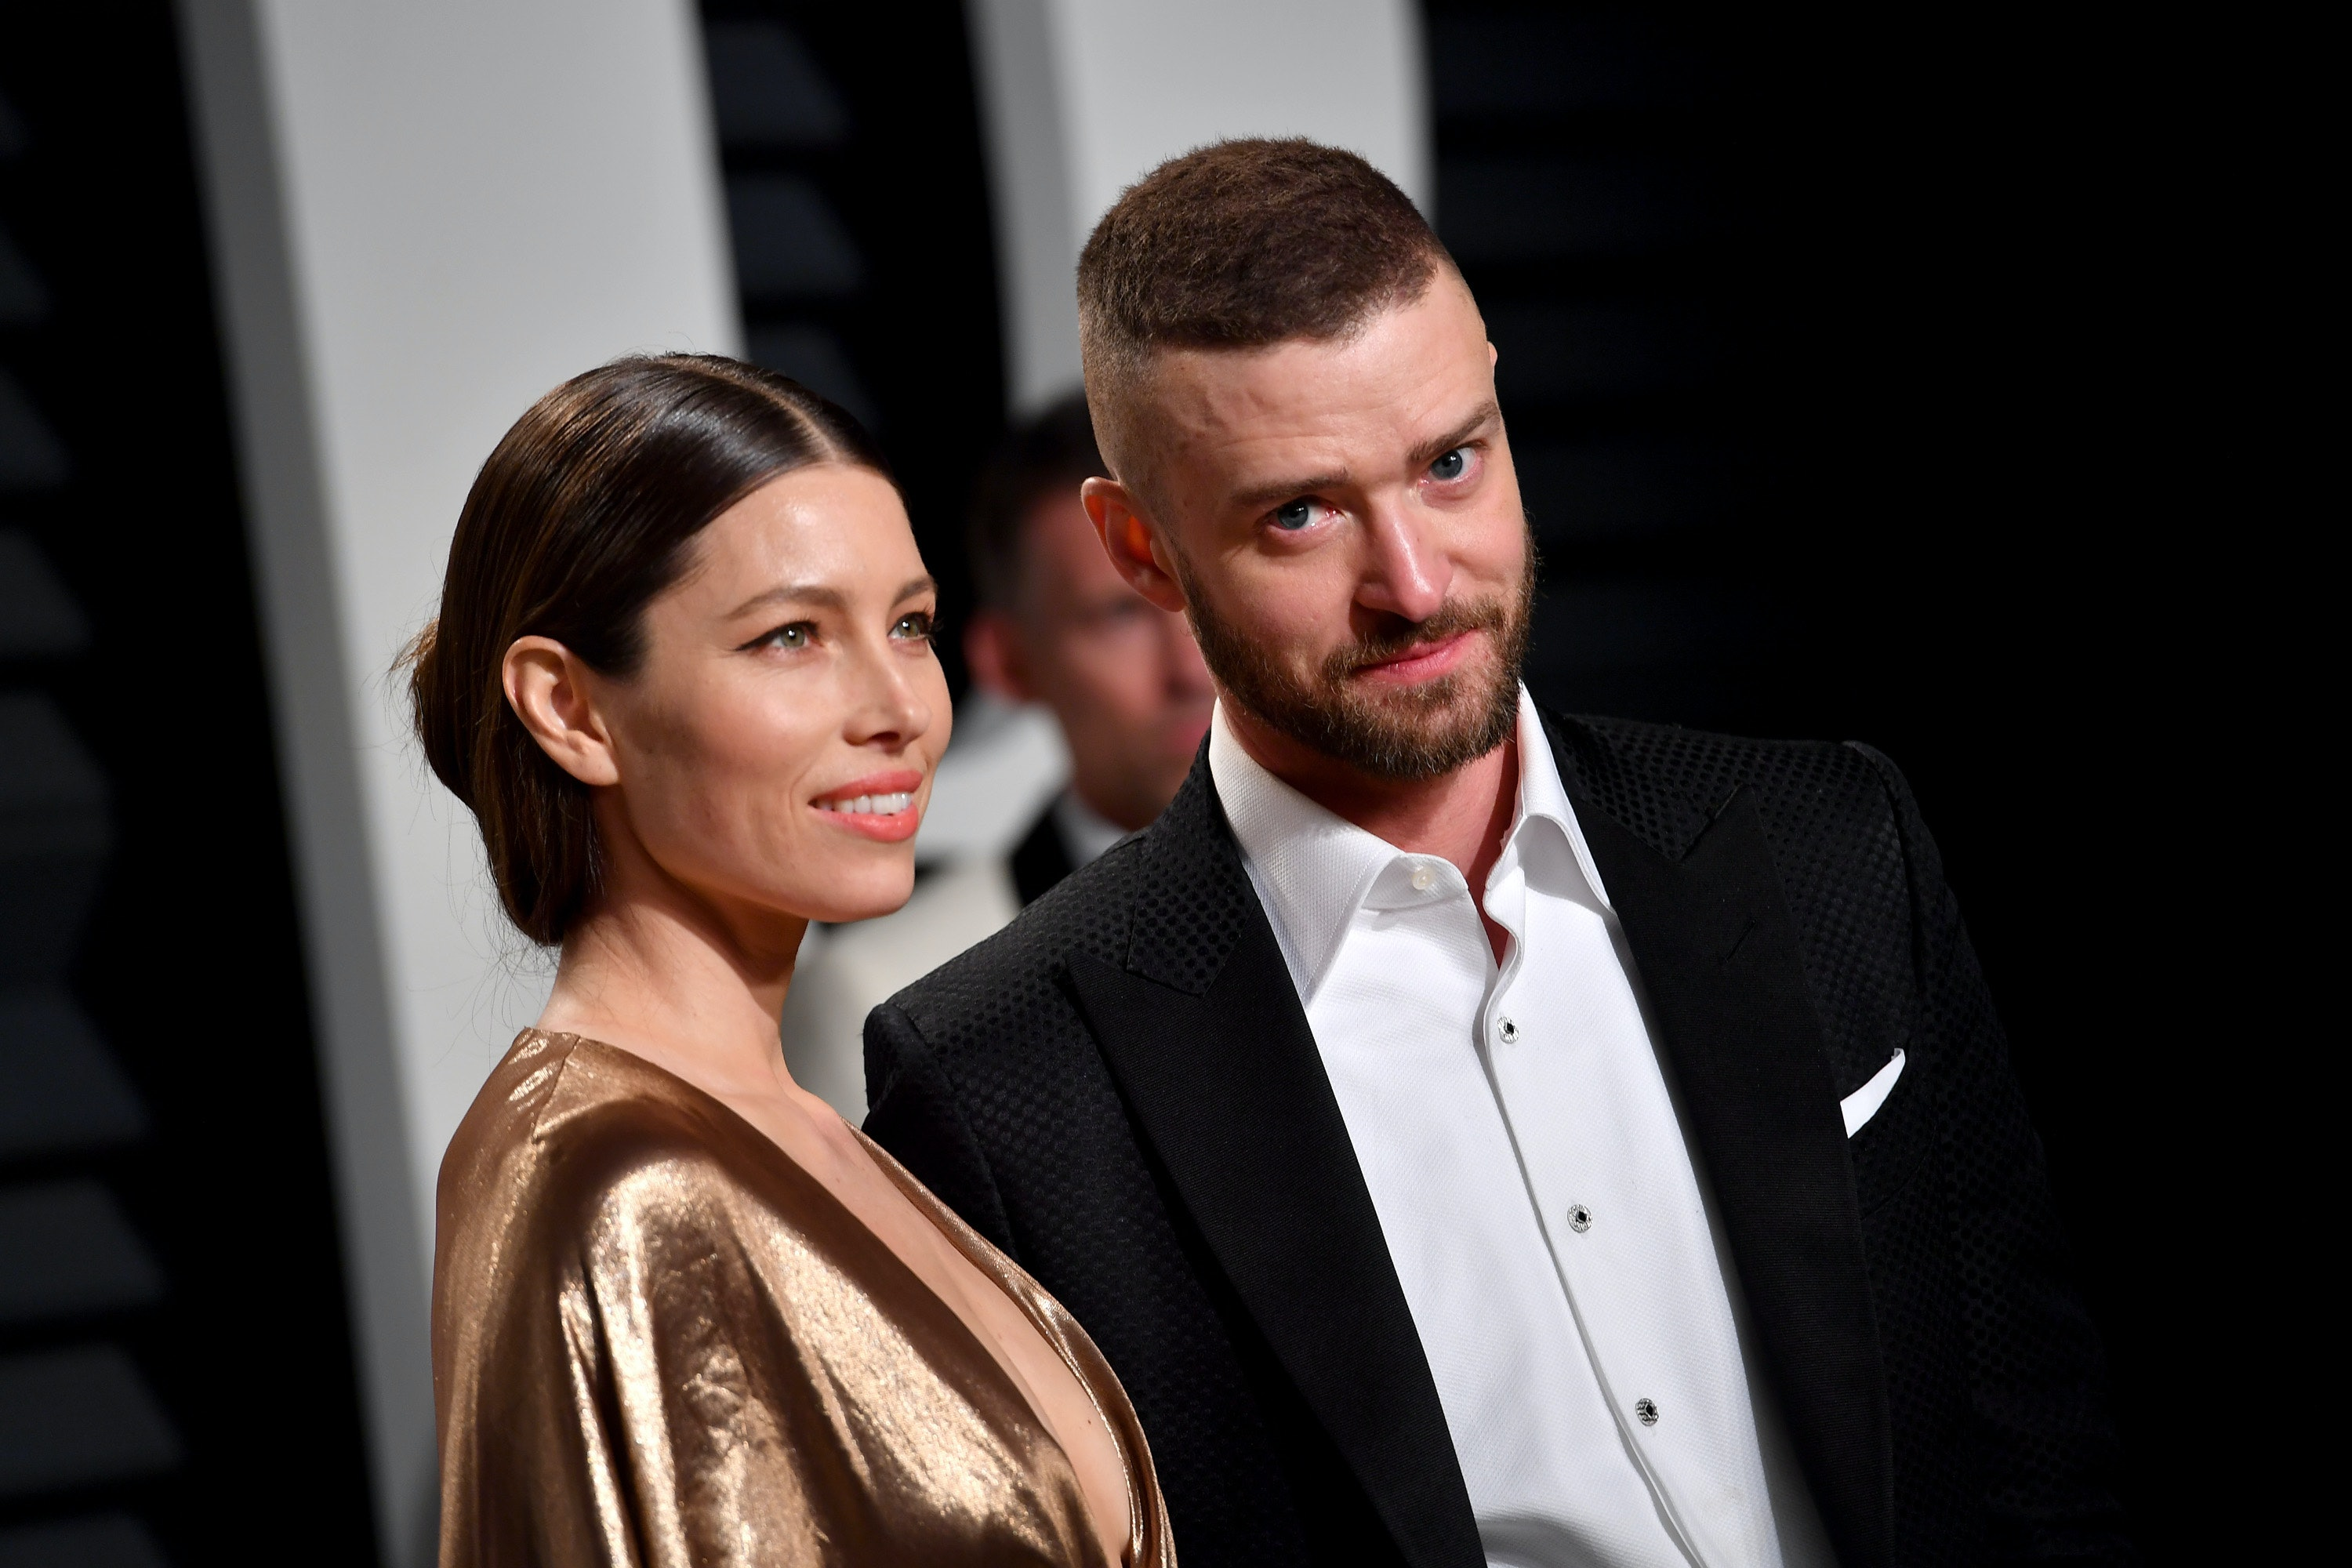 Women Everywhere Are Overwhelmingly Jealous of Jessica Biel Right Now